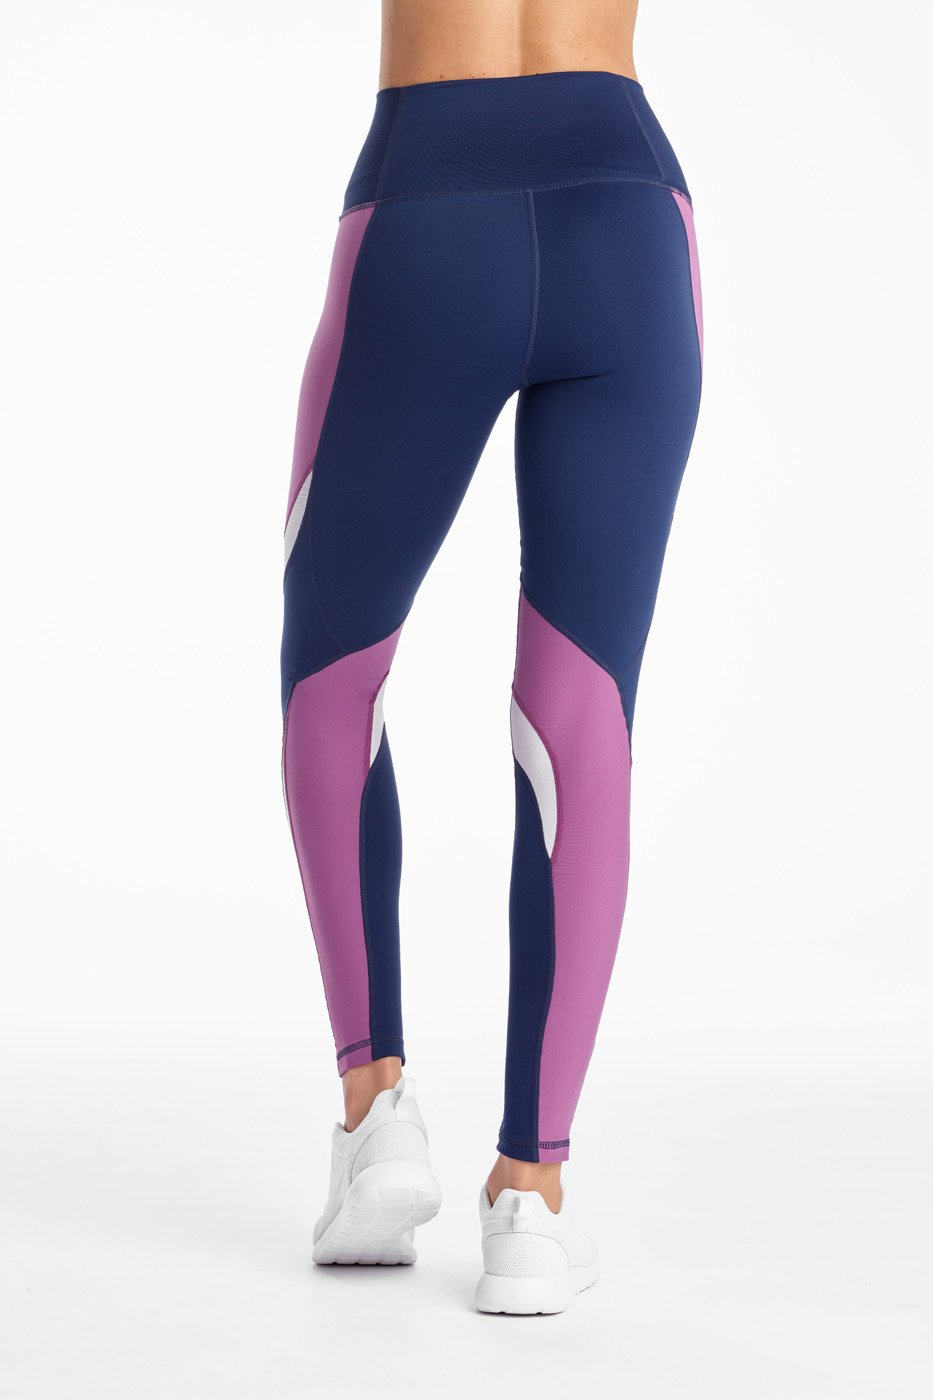 Heather Mix Tight - Navy Crocus Heather - Final Sale